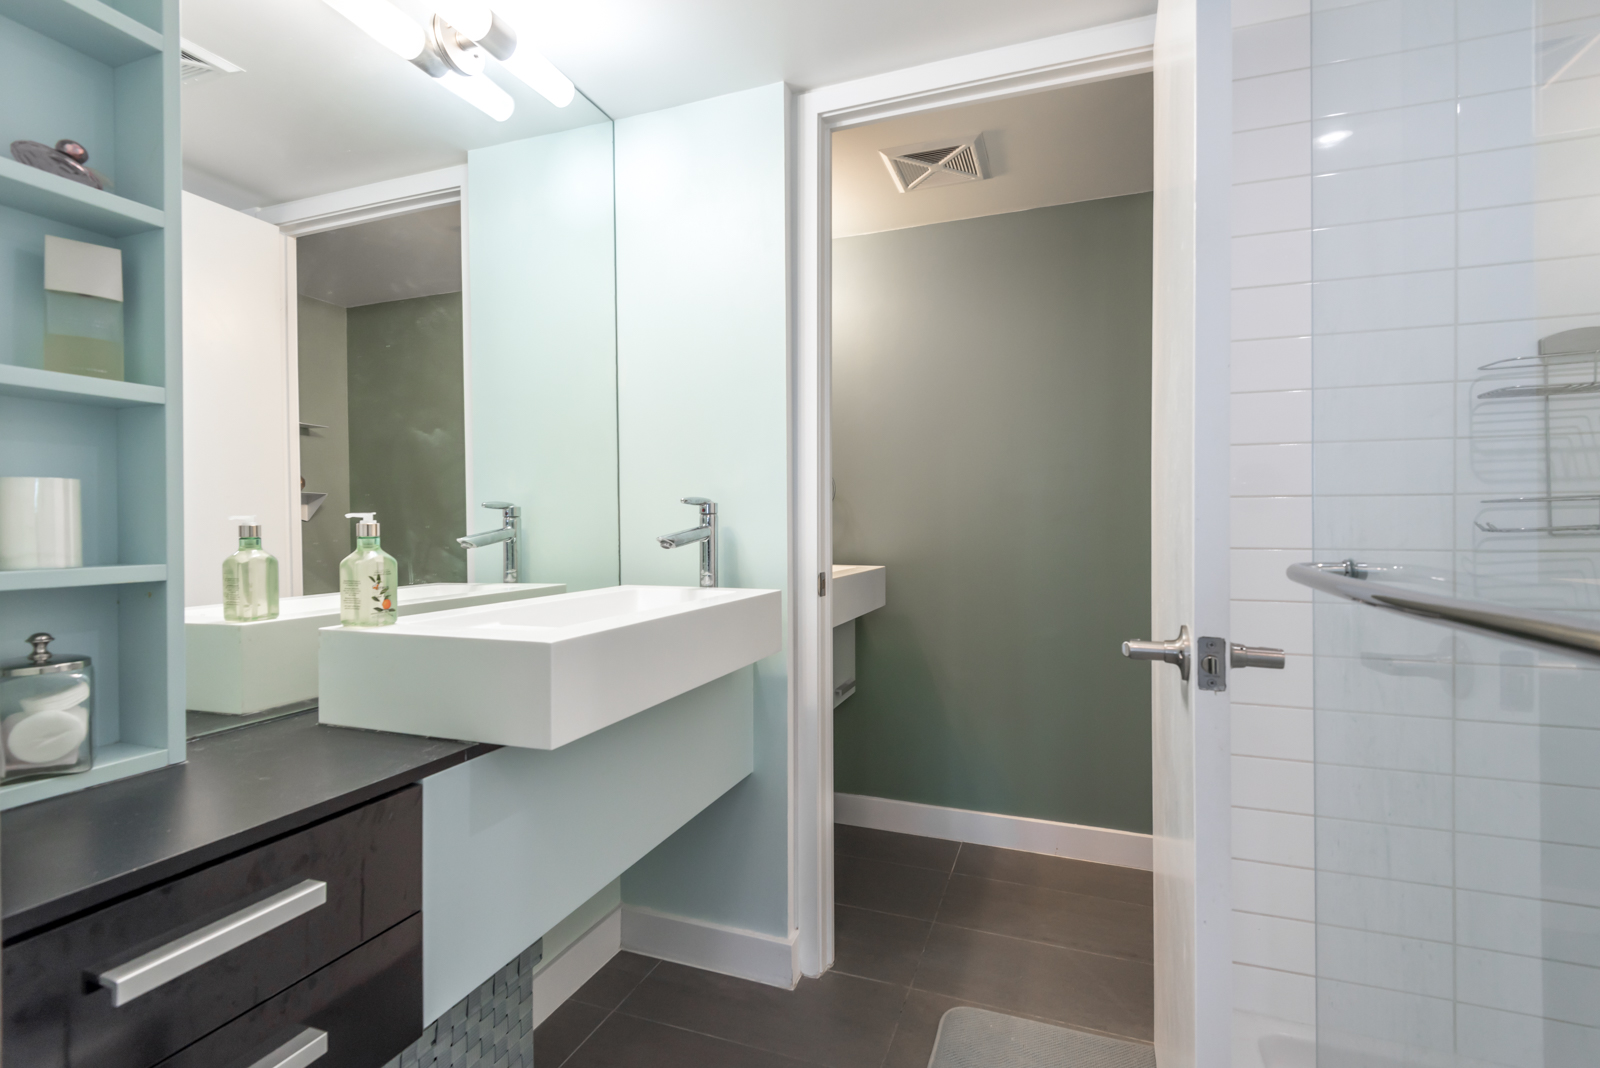 Photo of master bath and sink and cabinets and drawers.